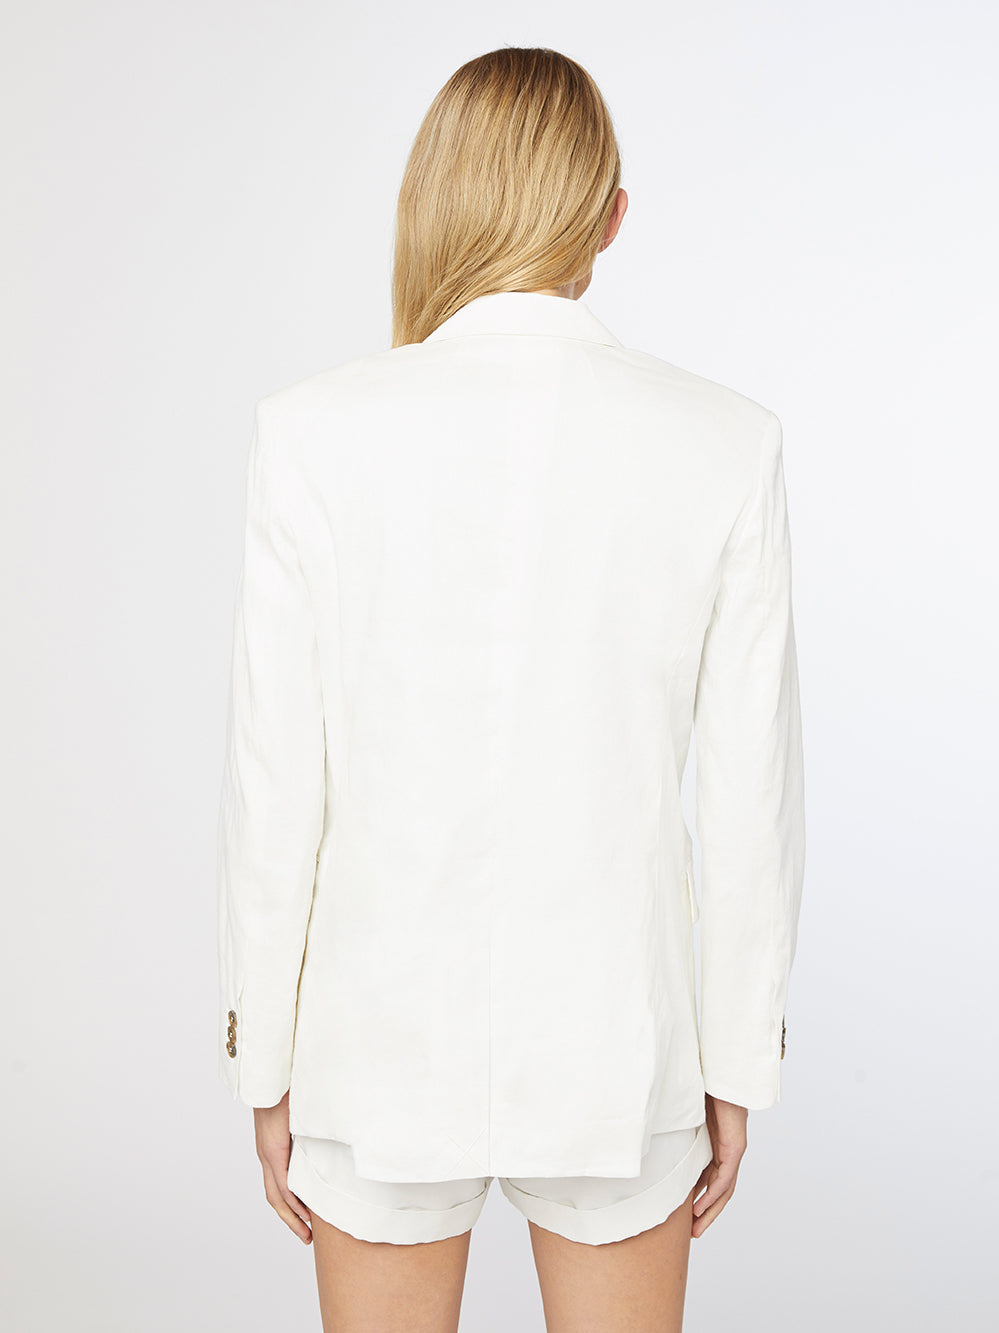 blazer back view